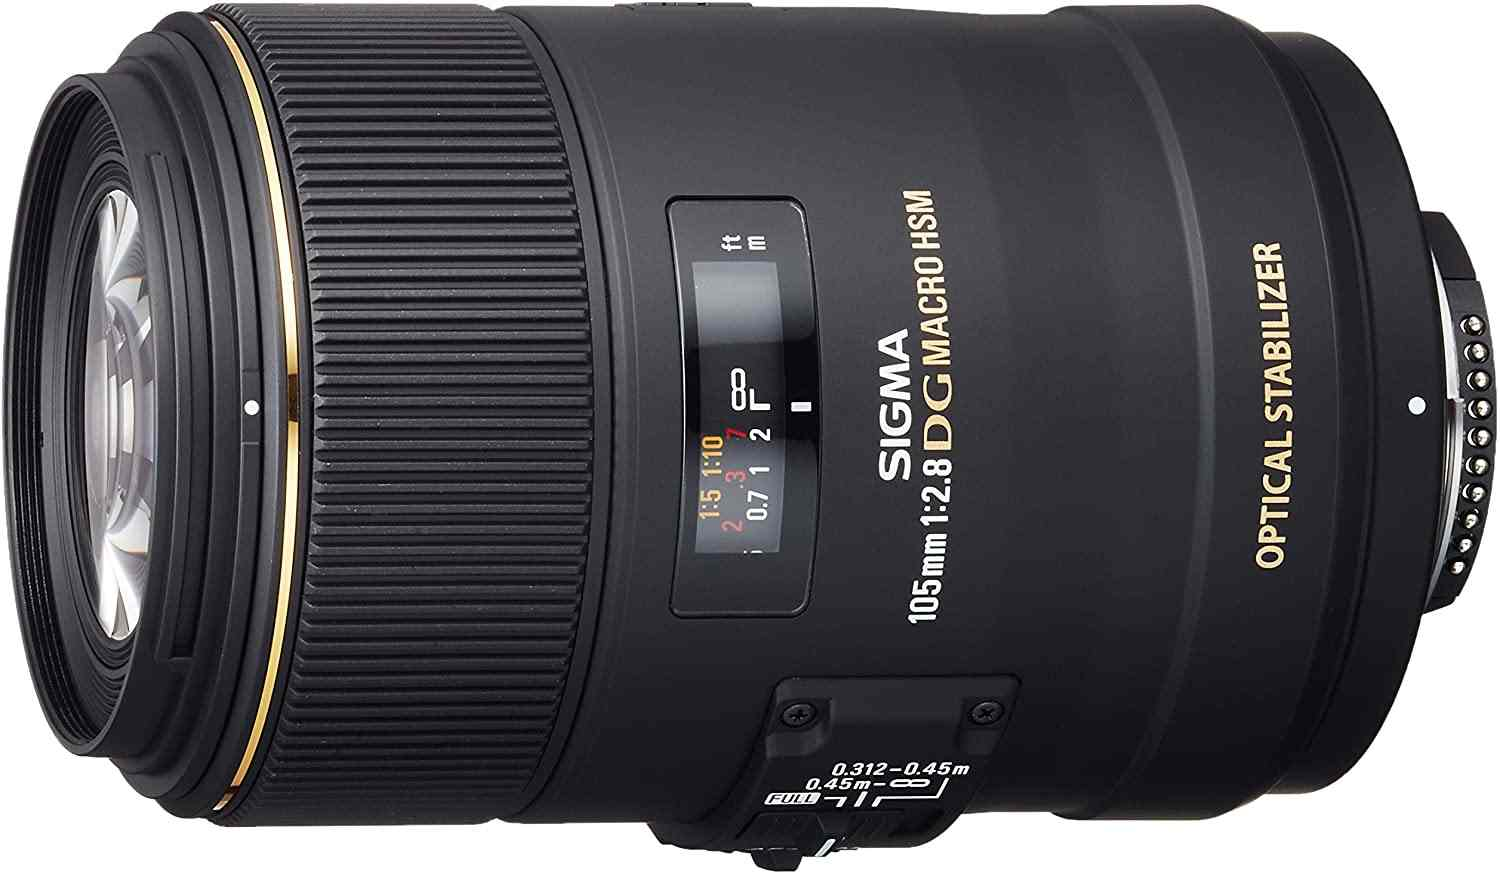 Sigma- best lens for product photography